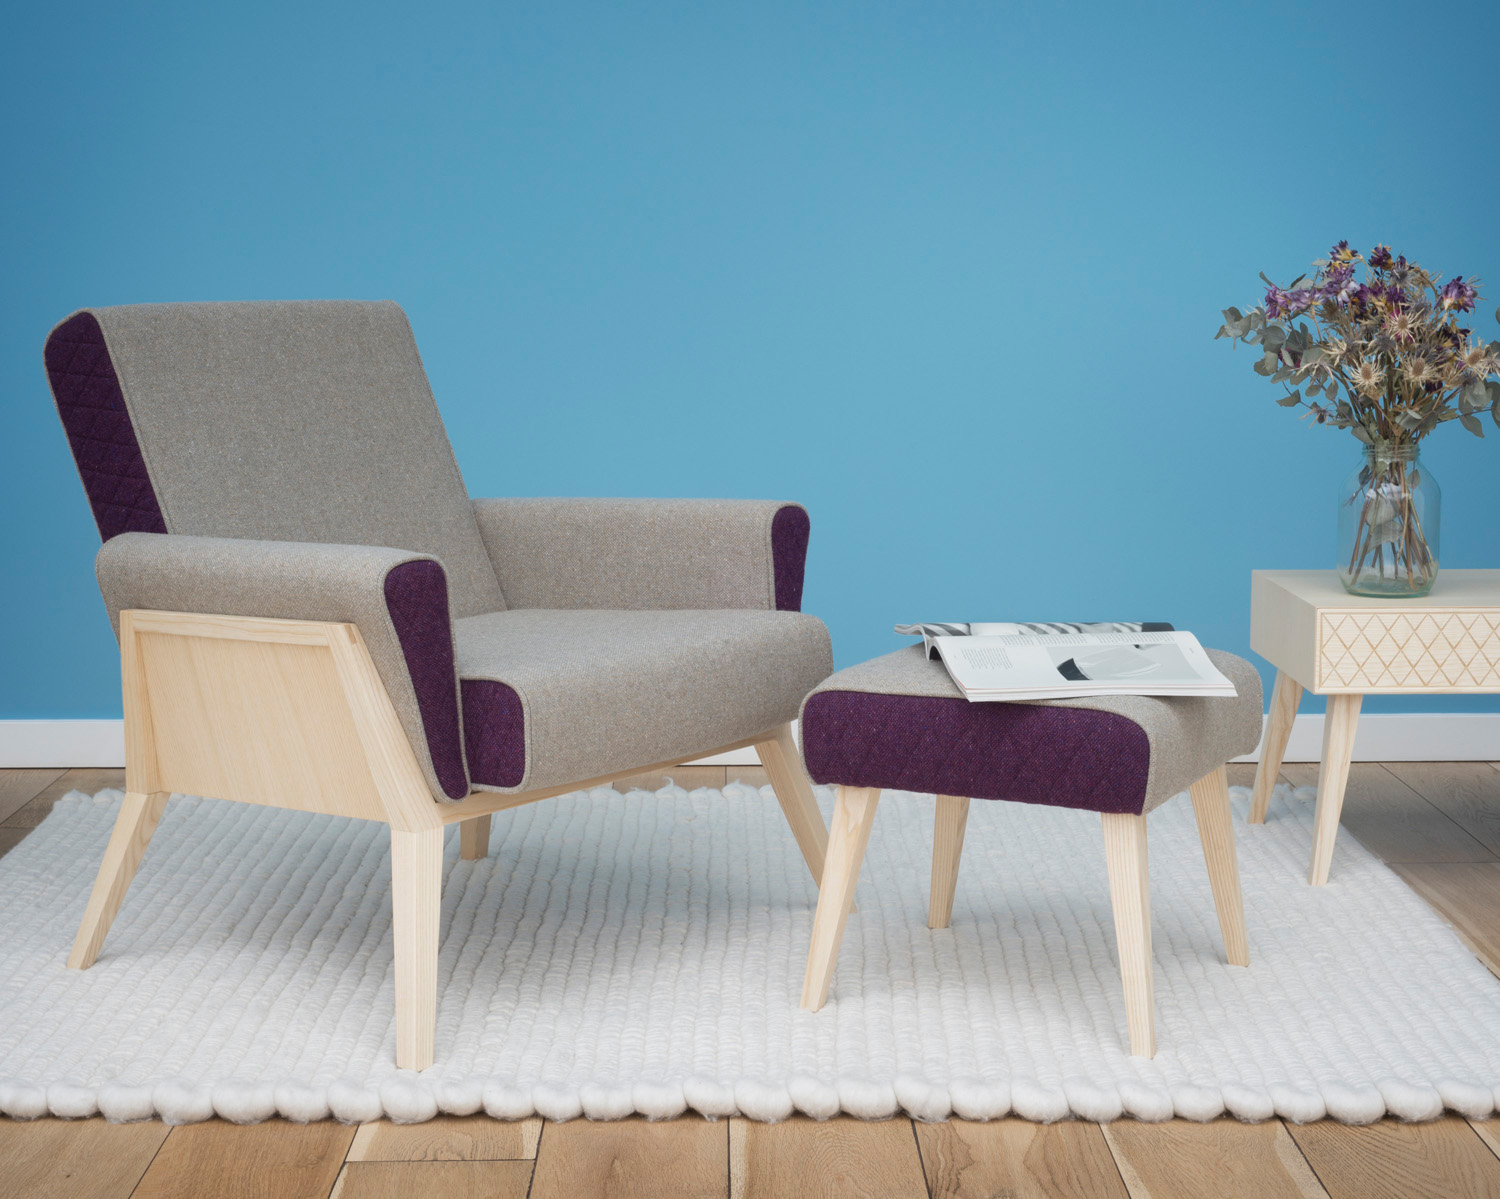 Æsh & Tweed coffee table, armchair and footstool  Photography by Justin Barton